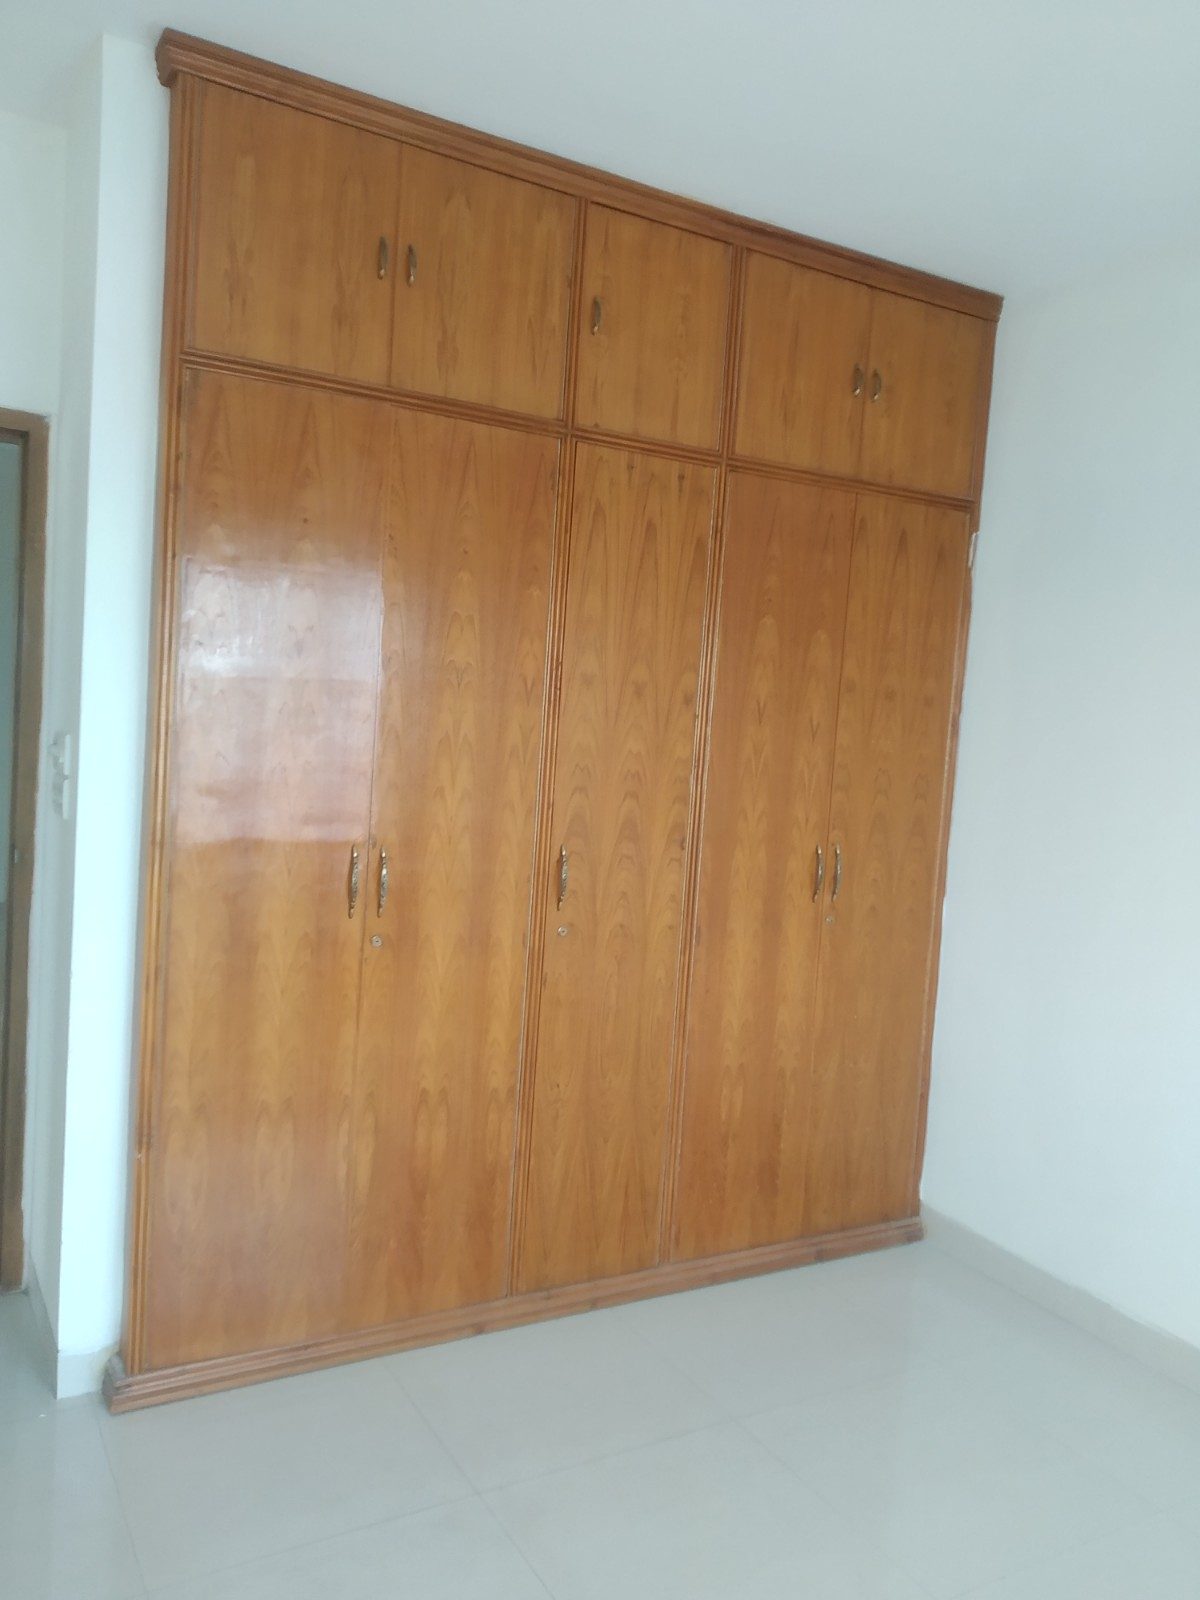 2810-sft-apartment-for-sale-at-dhanmondi-14th-floor-830228